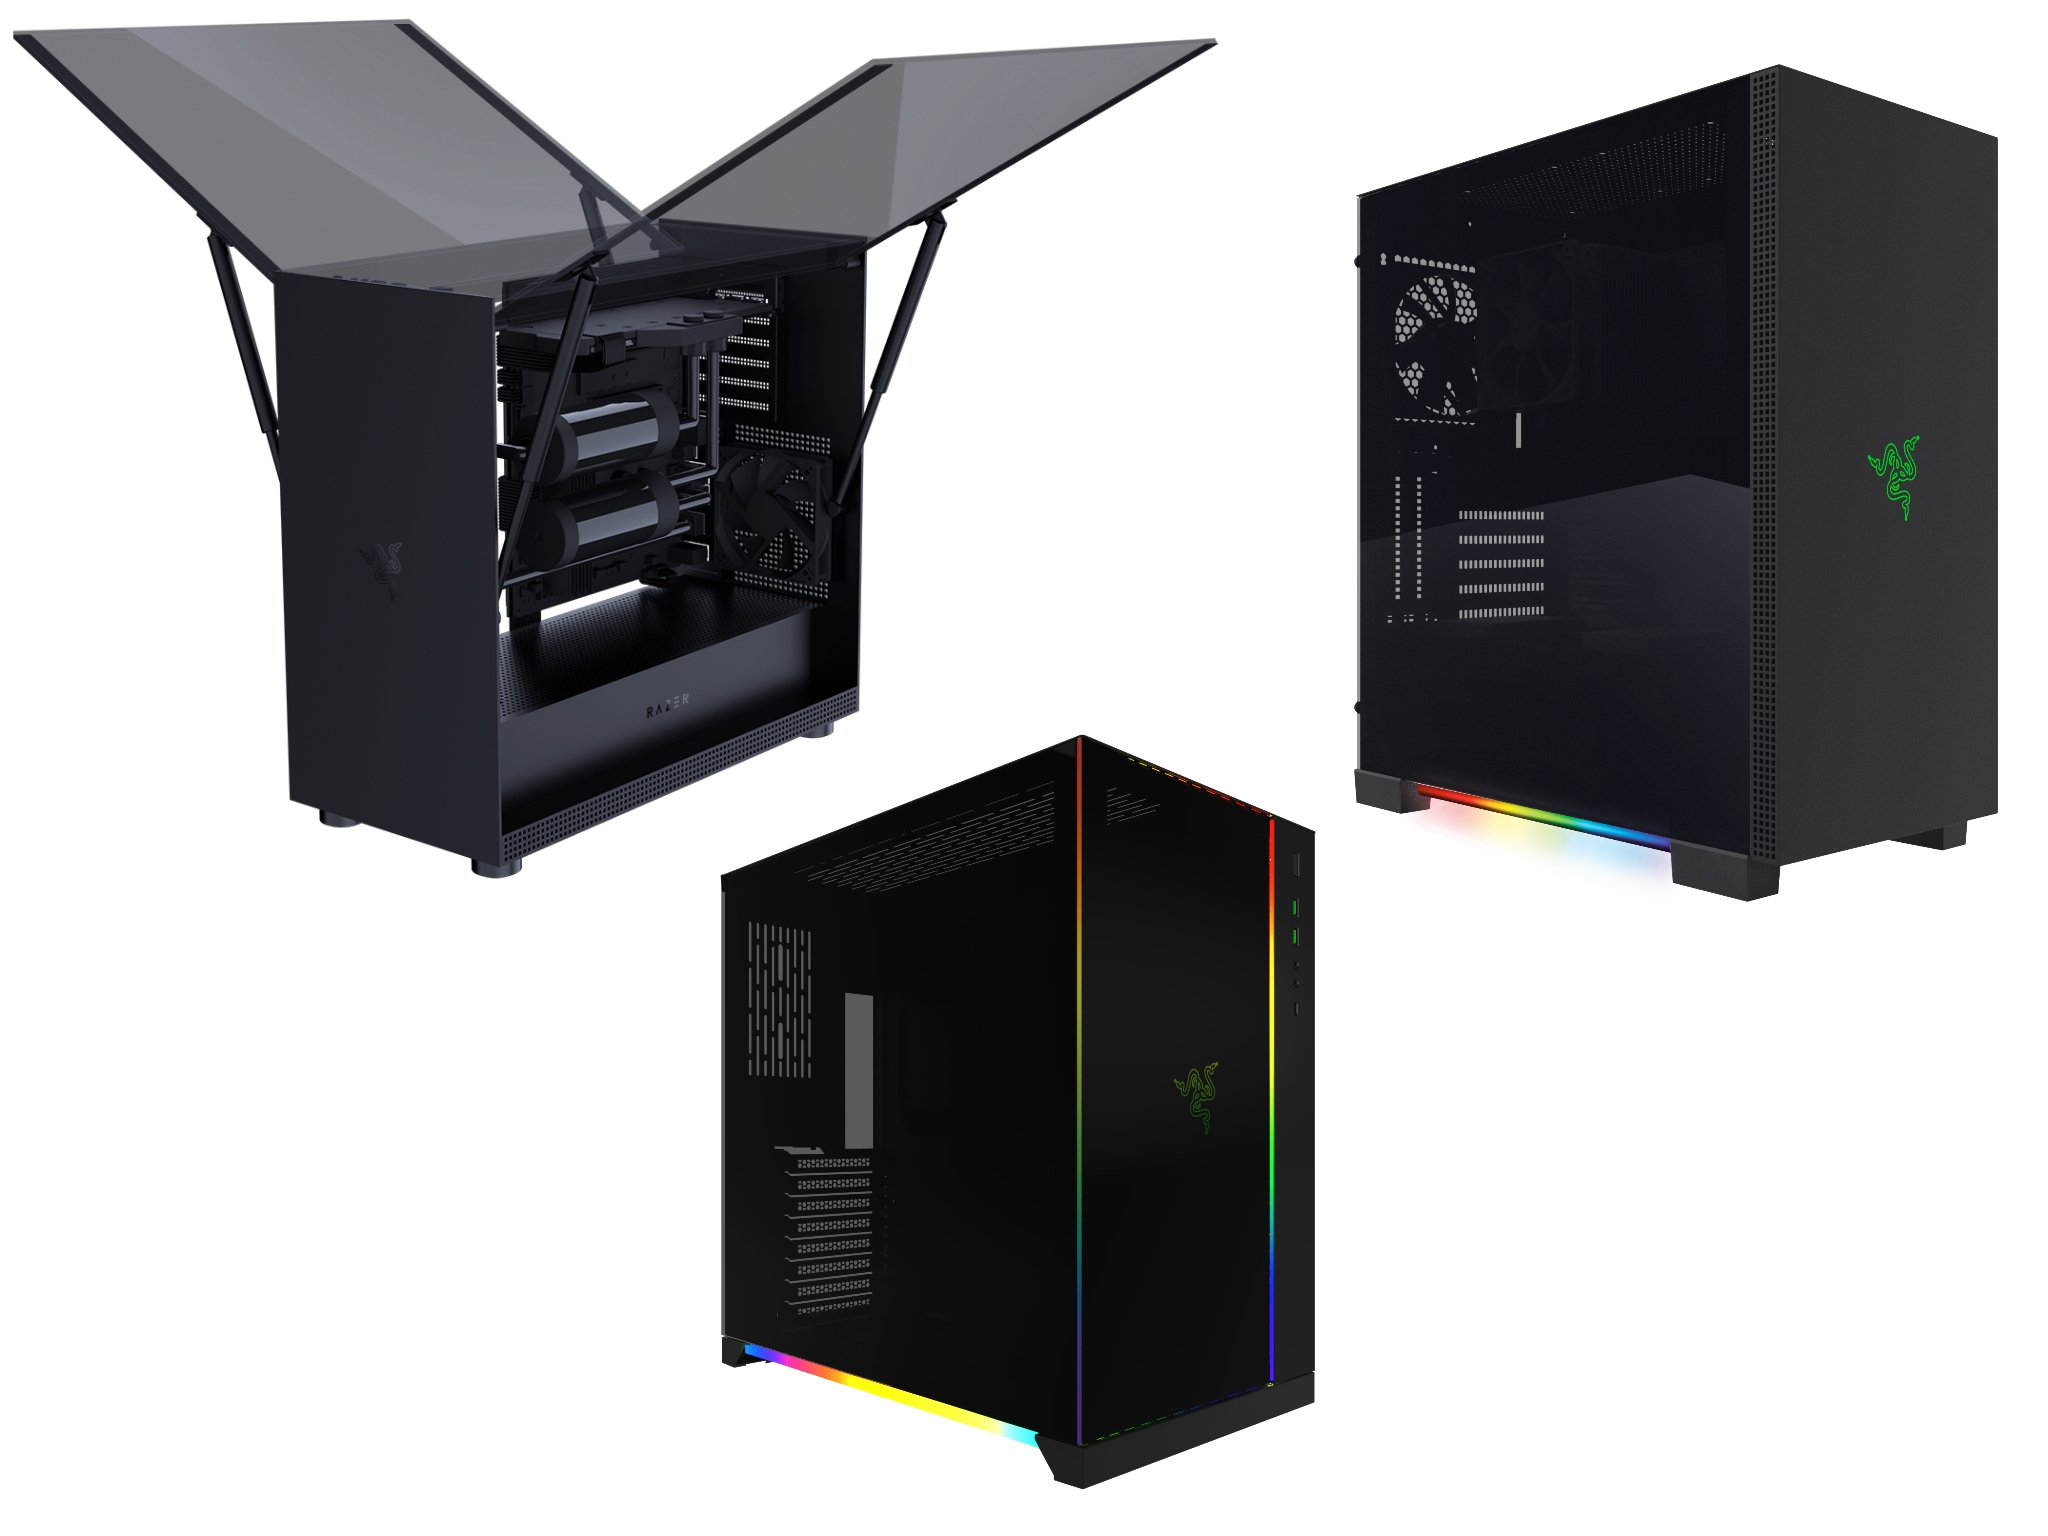 Case Pc Razer Launches Three Desktop Pc Cases With Chroma Lighting And